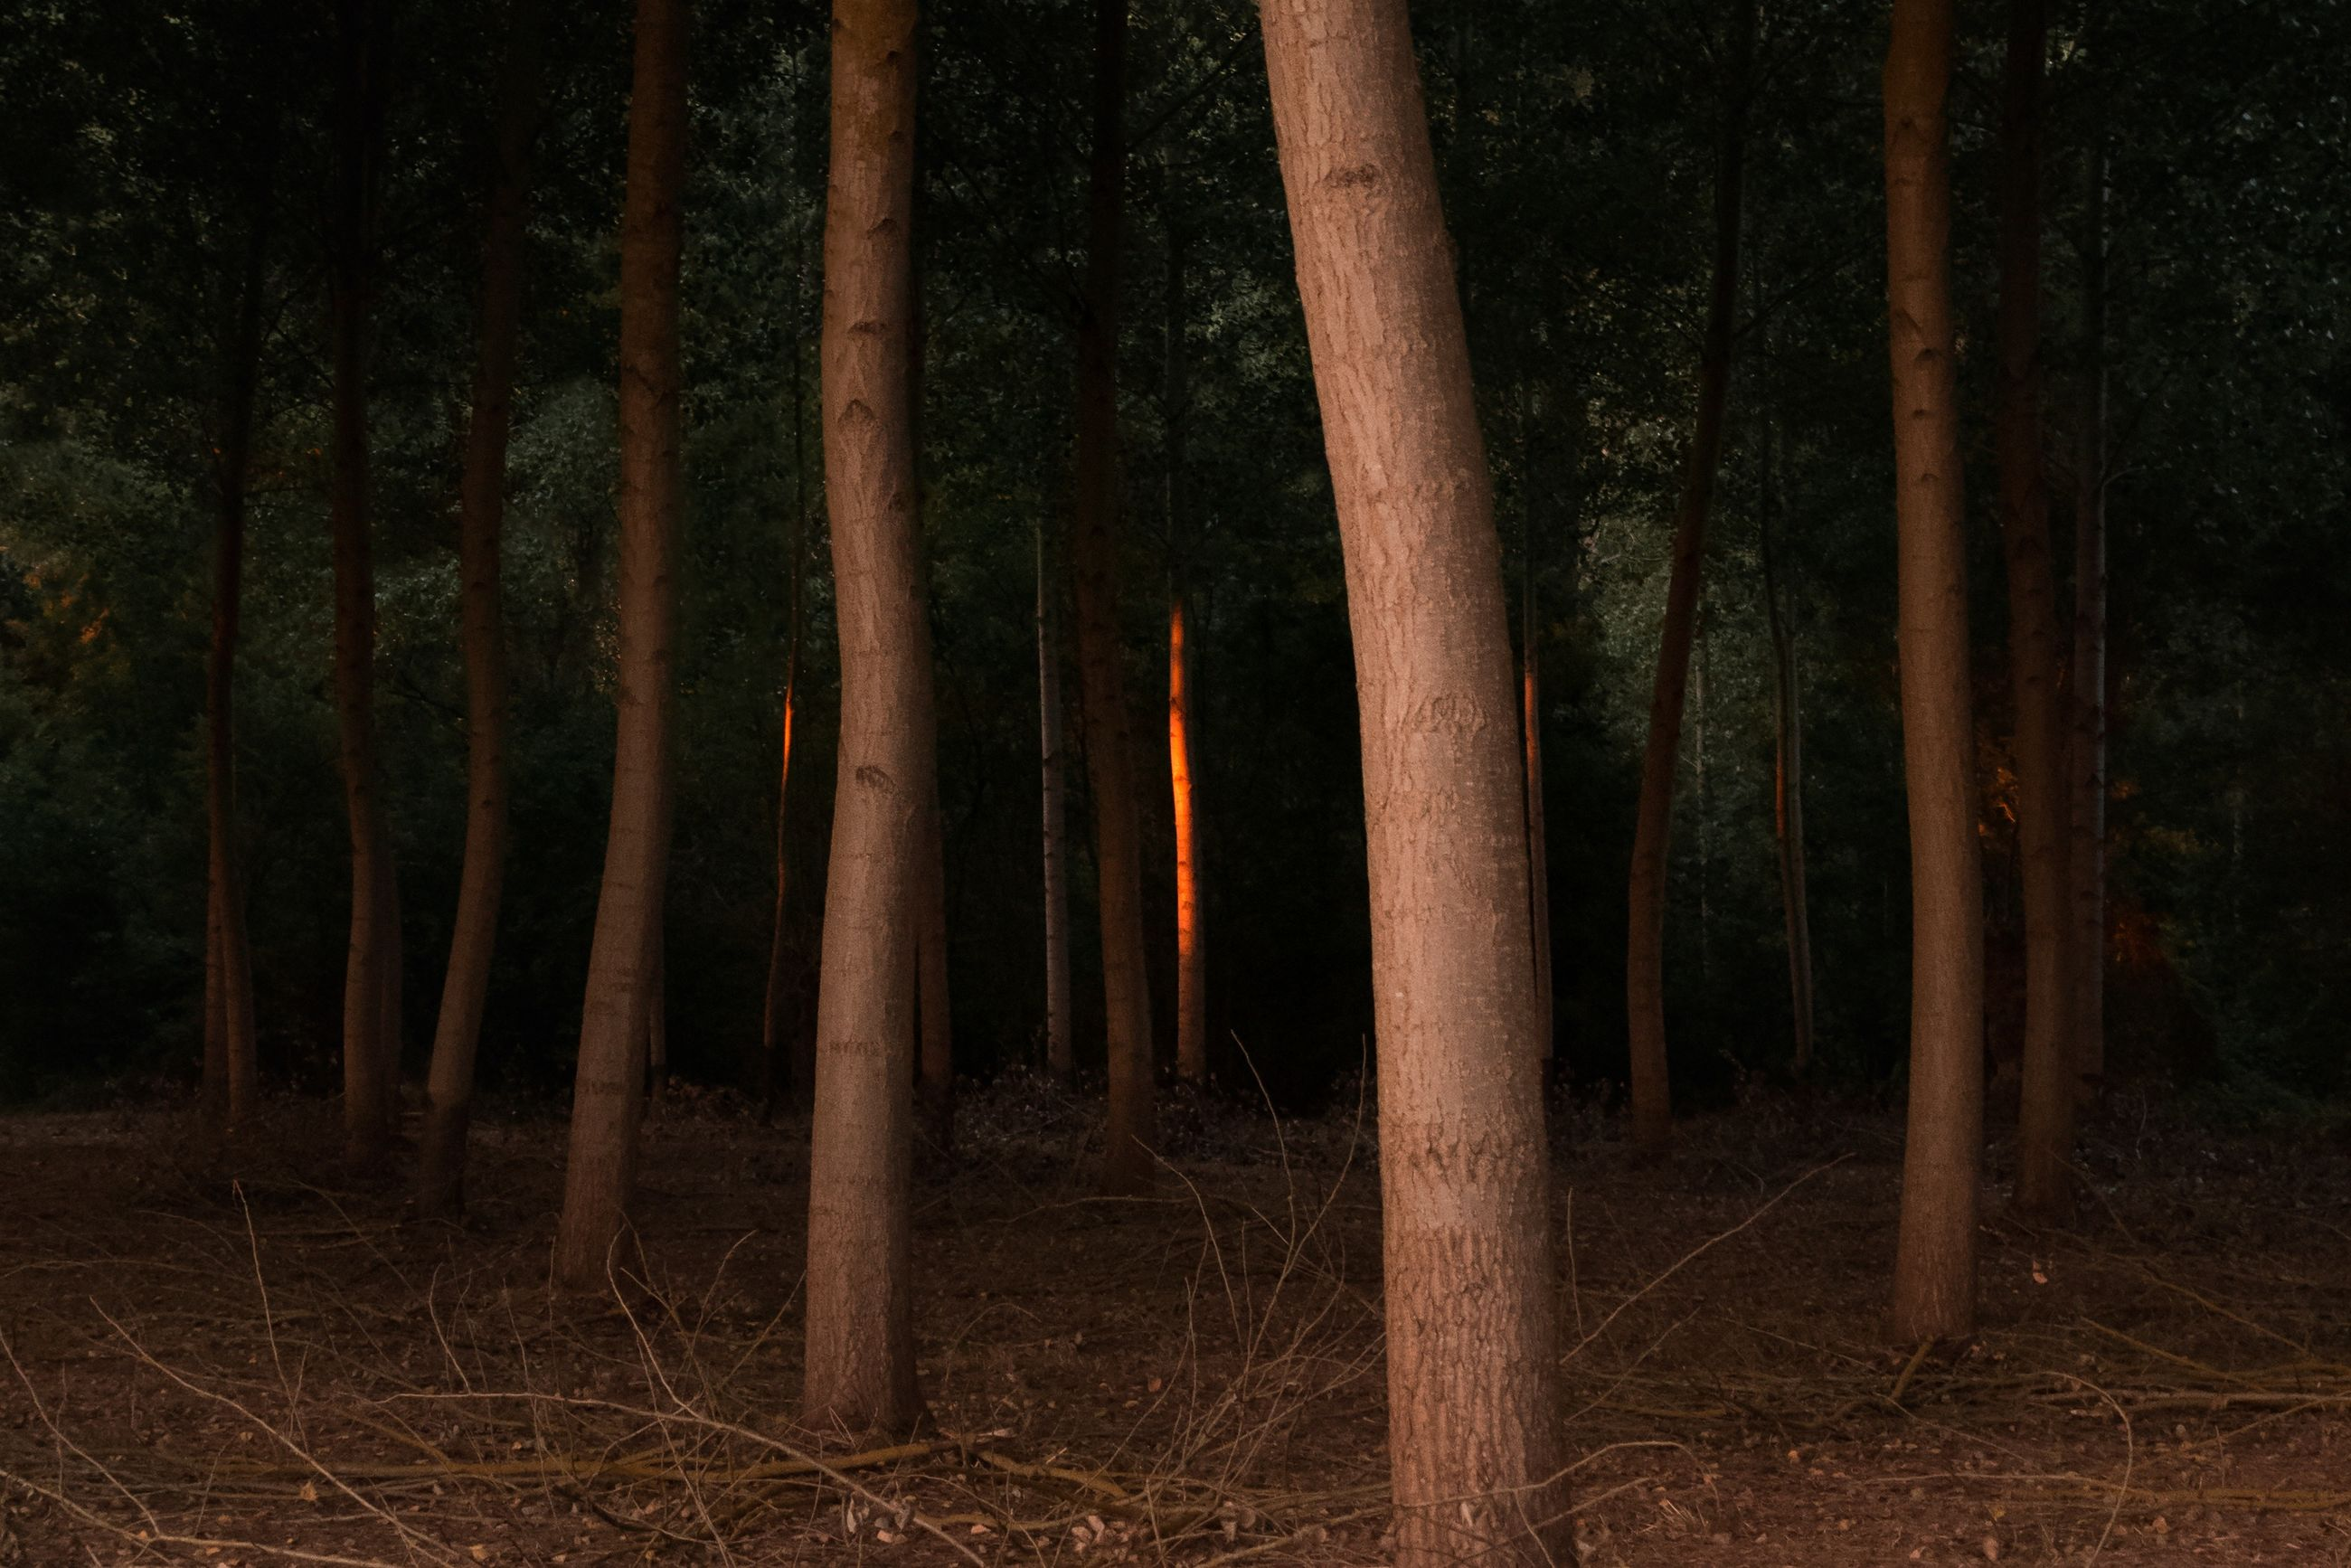 tree, forest, land, plant, tree trunk, trunk, woodland, nature, no people, tranquility, night, growth, non-urban scene, field, beauty in nature, tranquil scene, outdoors, scenics - nature, bamboo, bamboo - plant